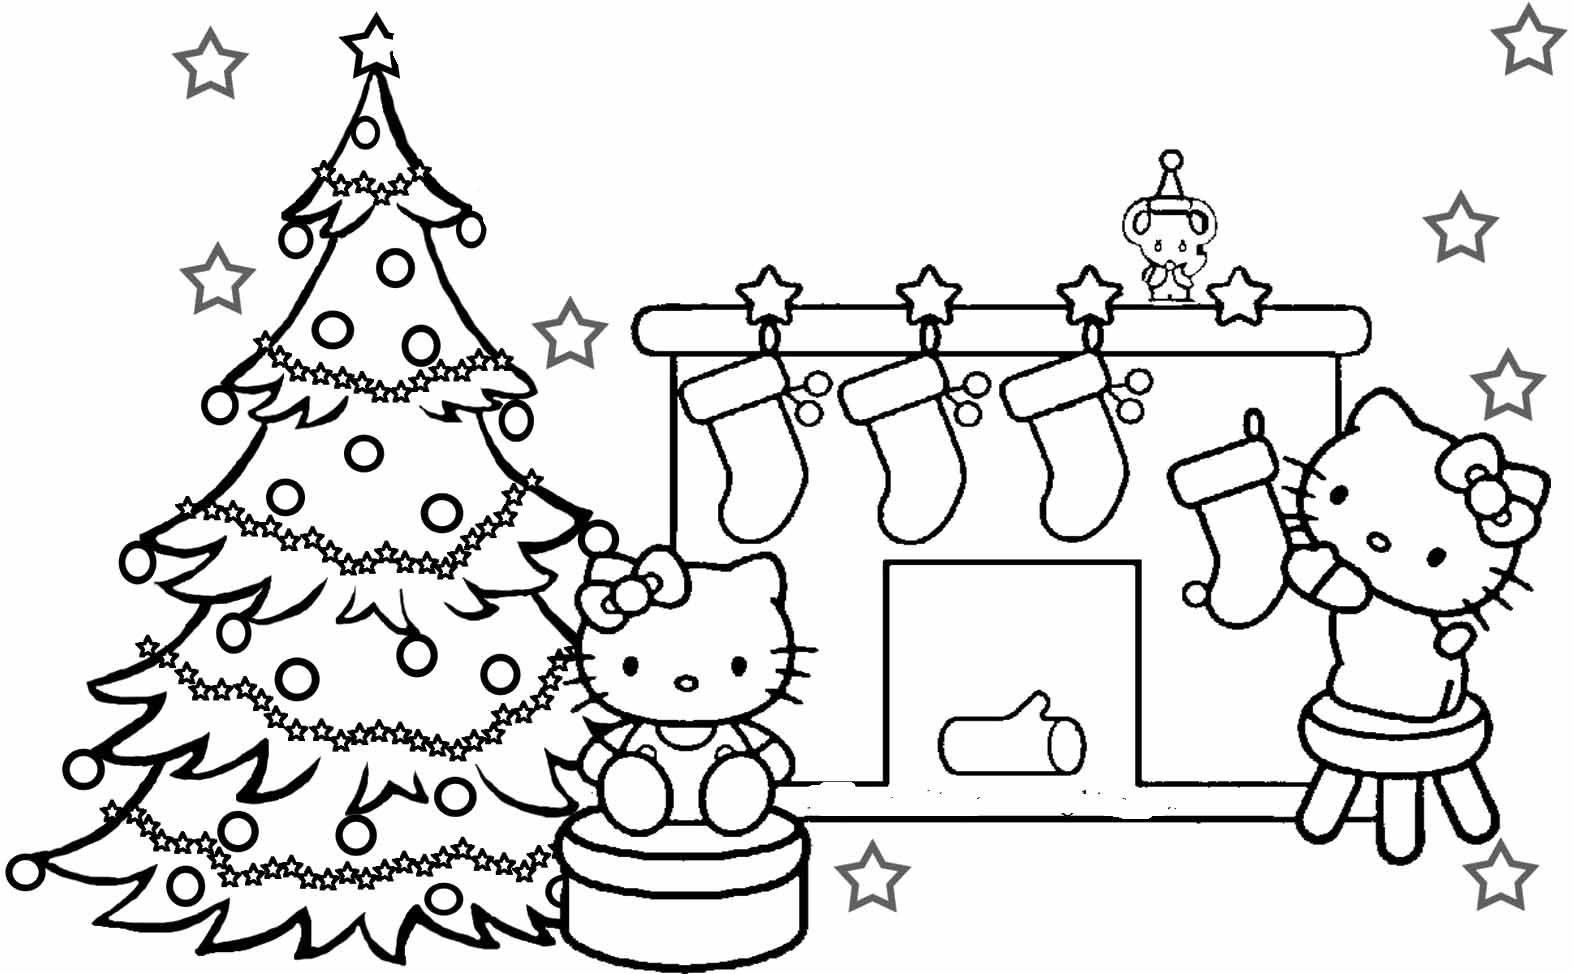 Adult Beauty Free Printable Christmas Coloring Pages For Kids Images best hello kitty happy merry christmas coloring pages free kids printable gallery images